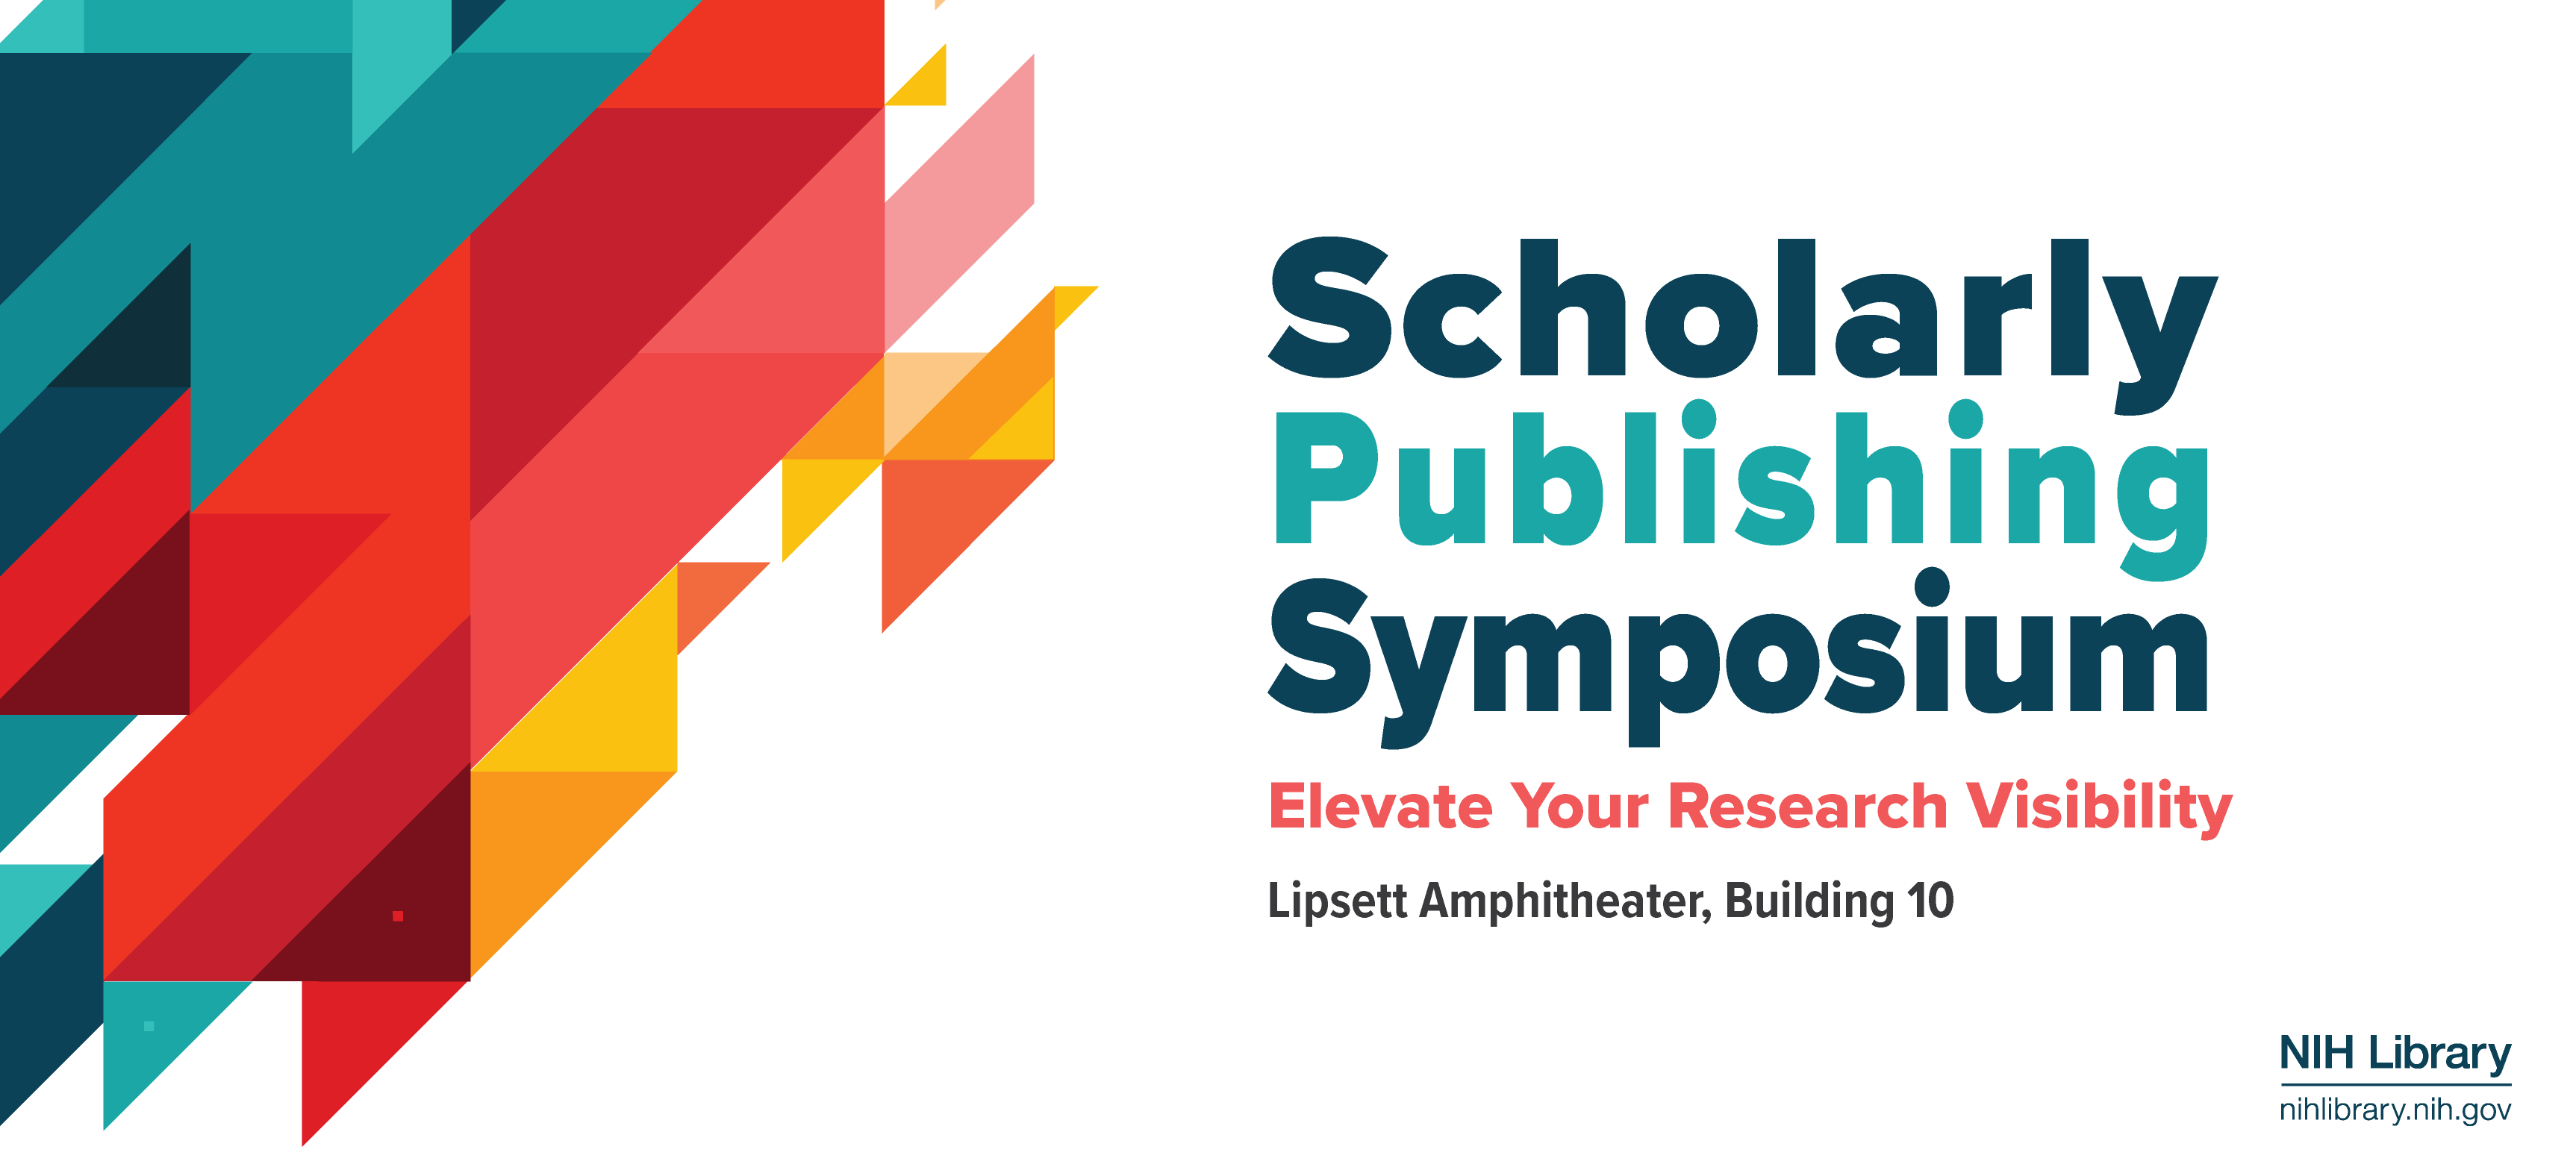 Scholarly Publishing Symposium - March 18, 2020